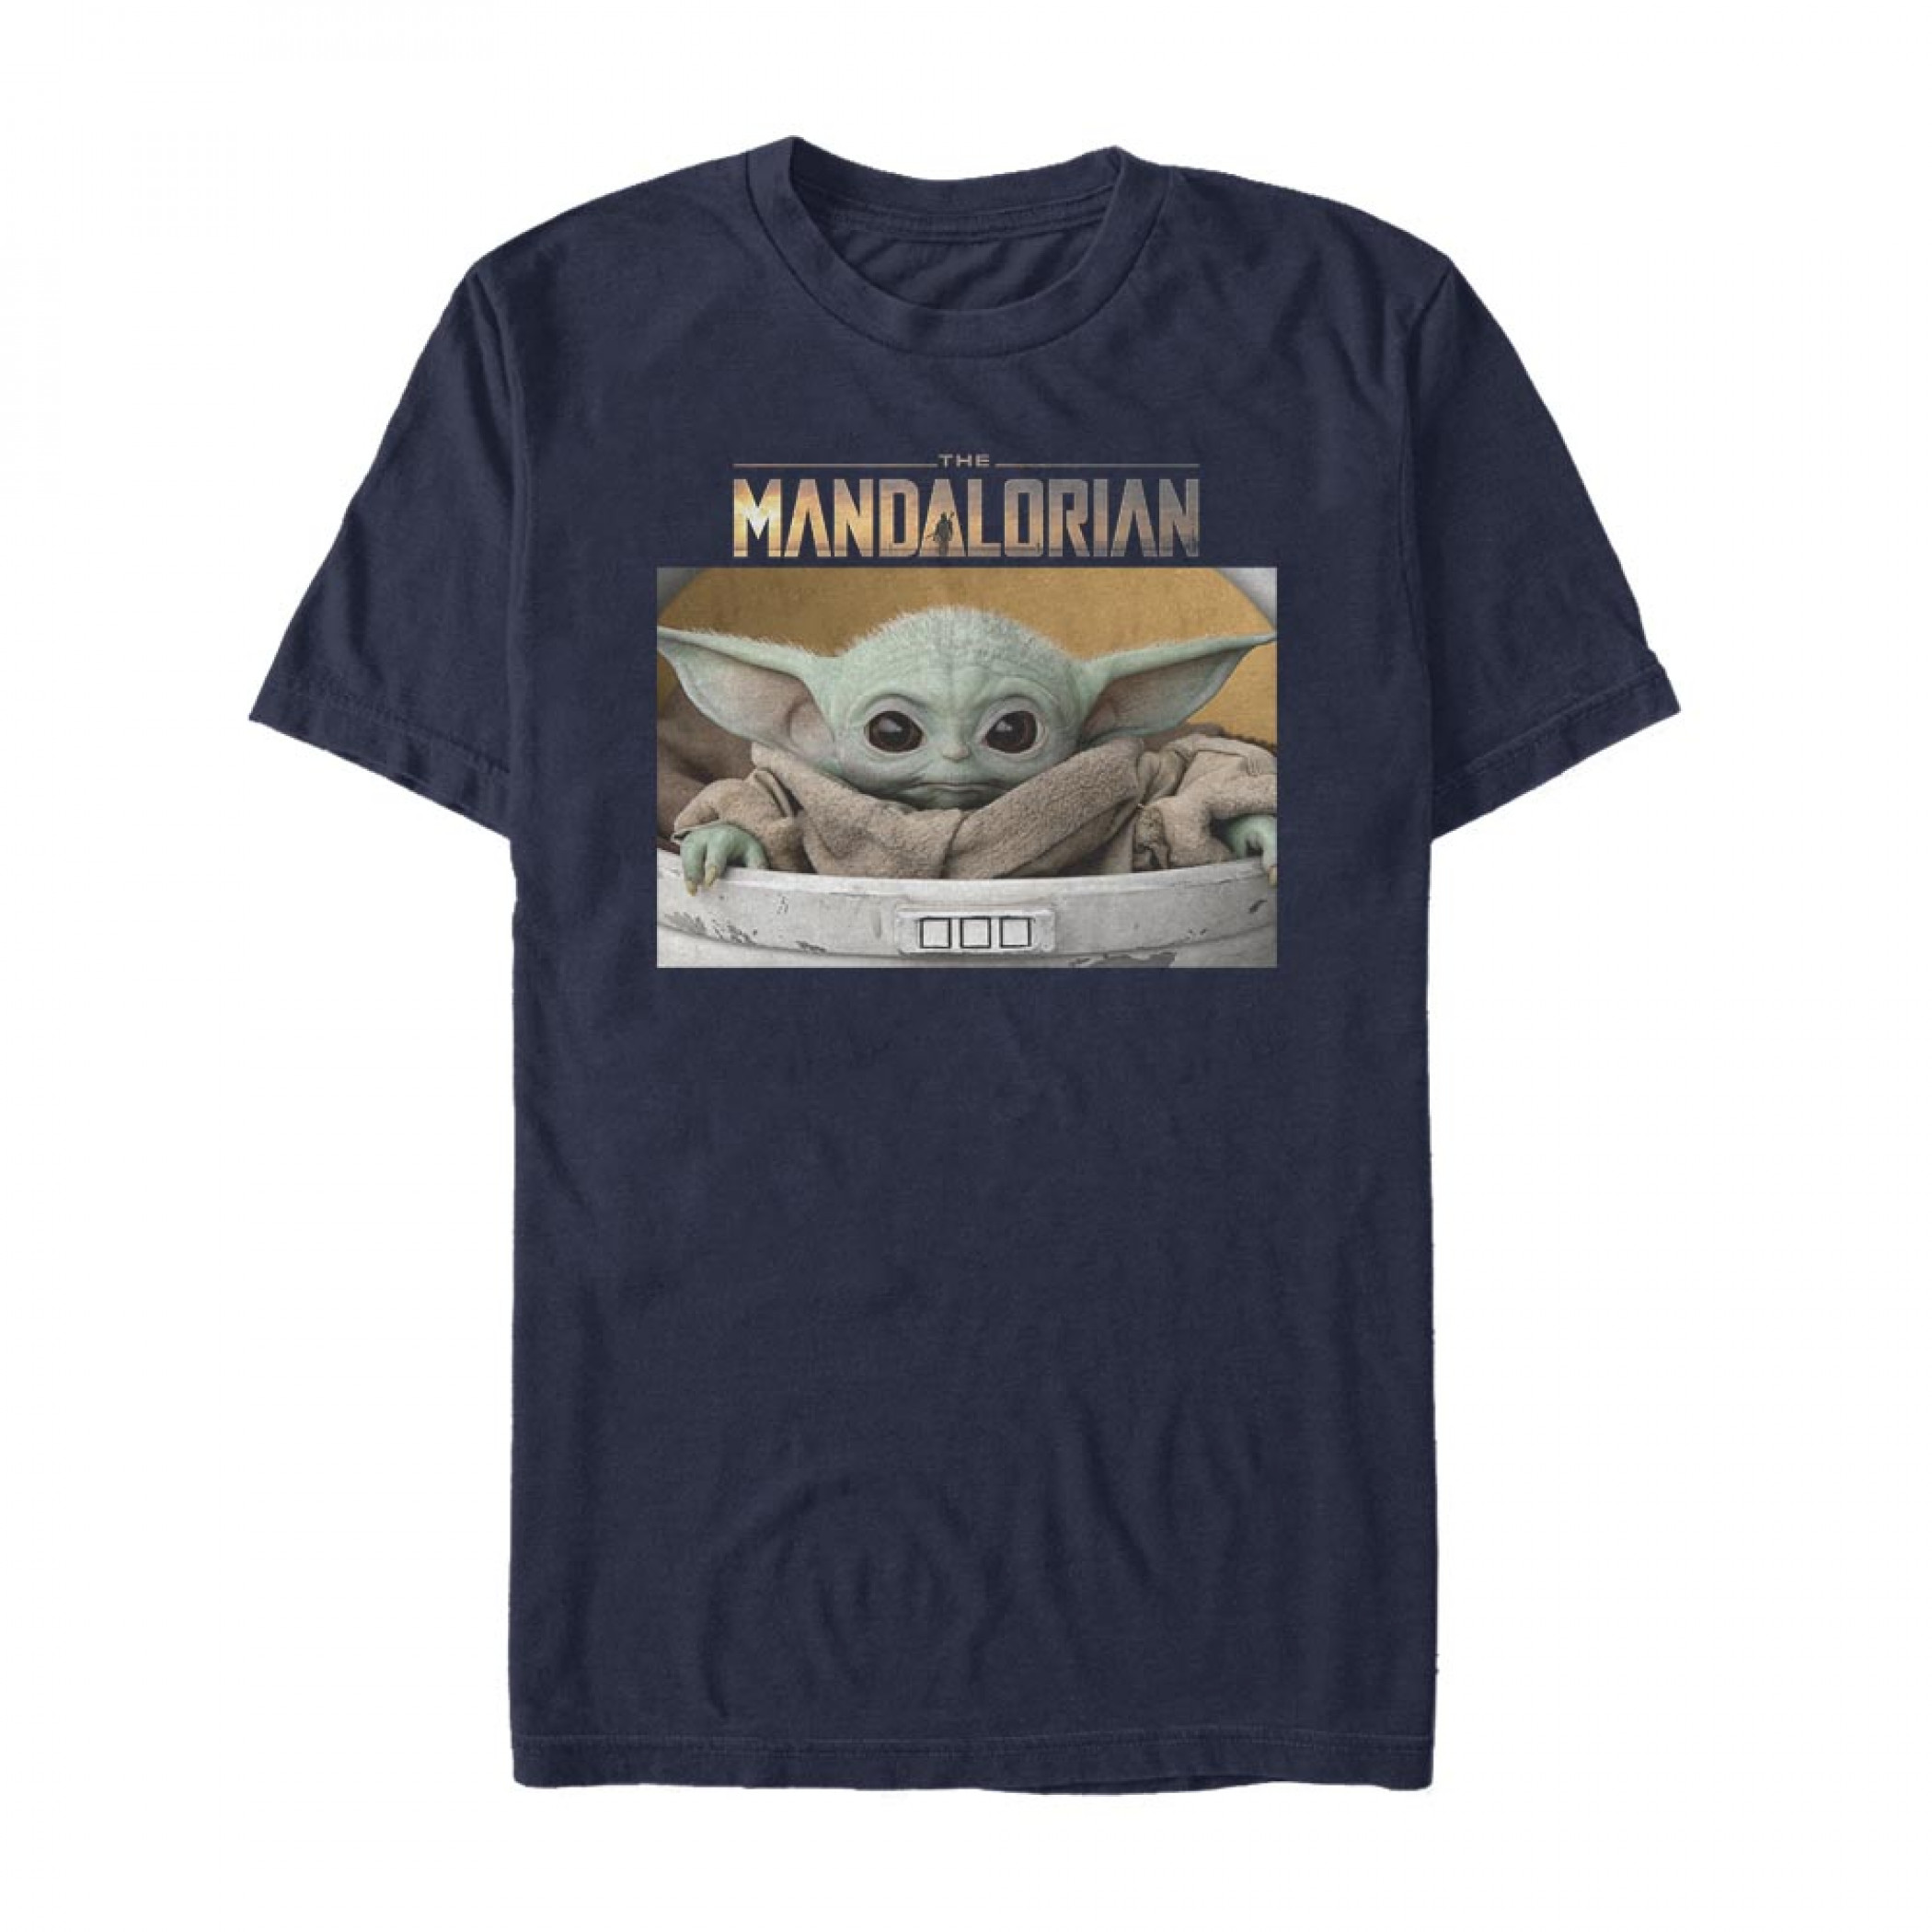 Star Wars The Mandalorian The Child Bassinet T-Shirt